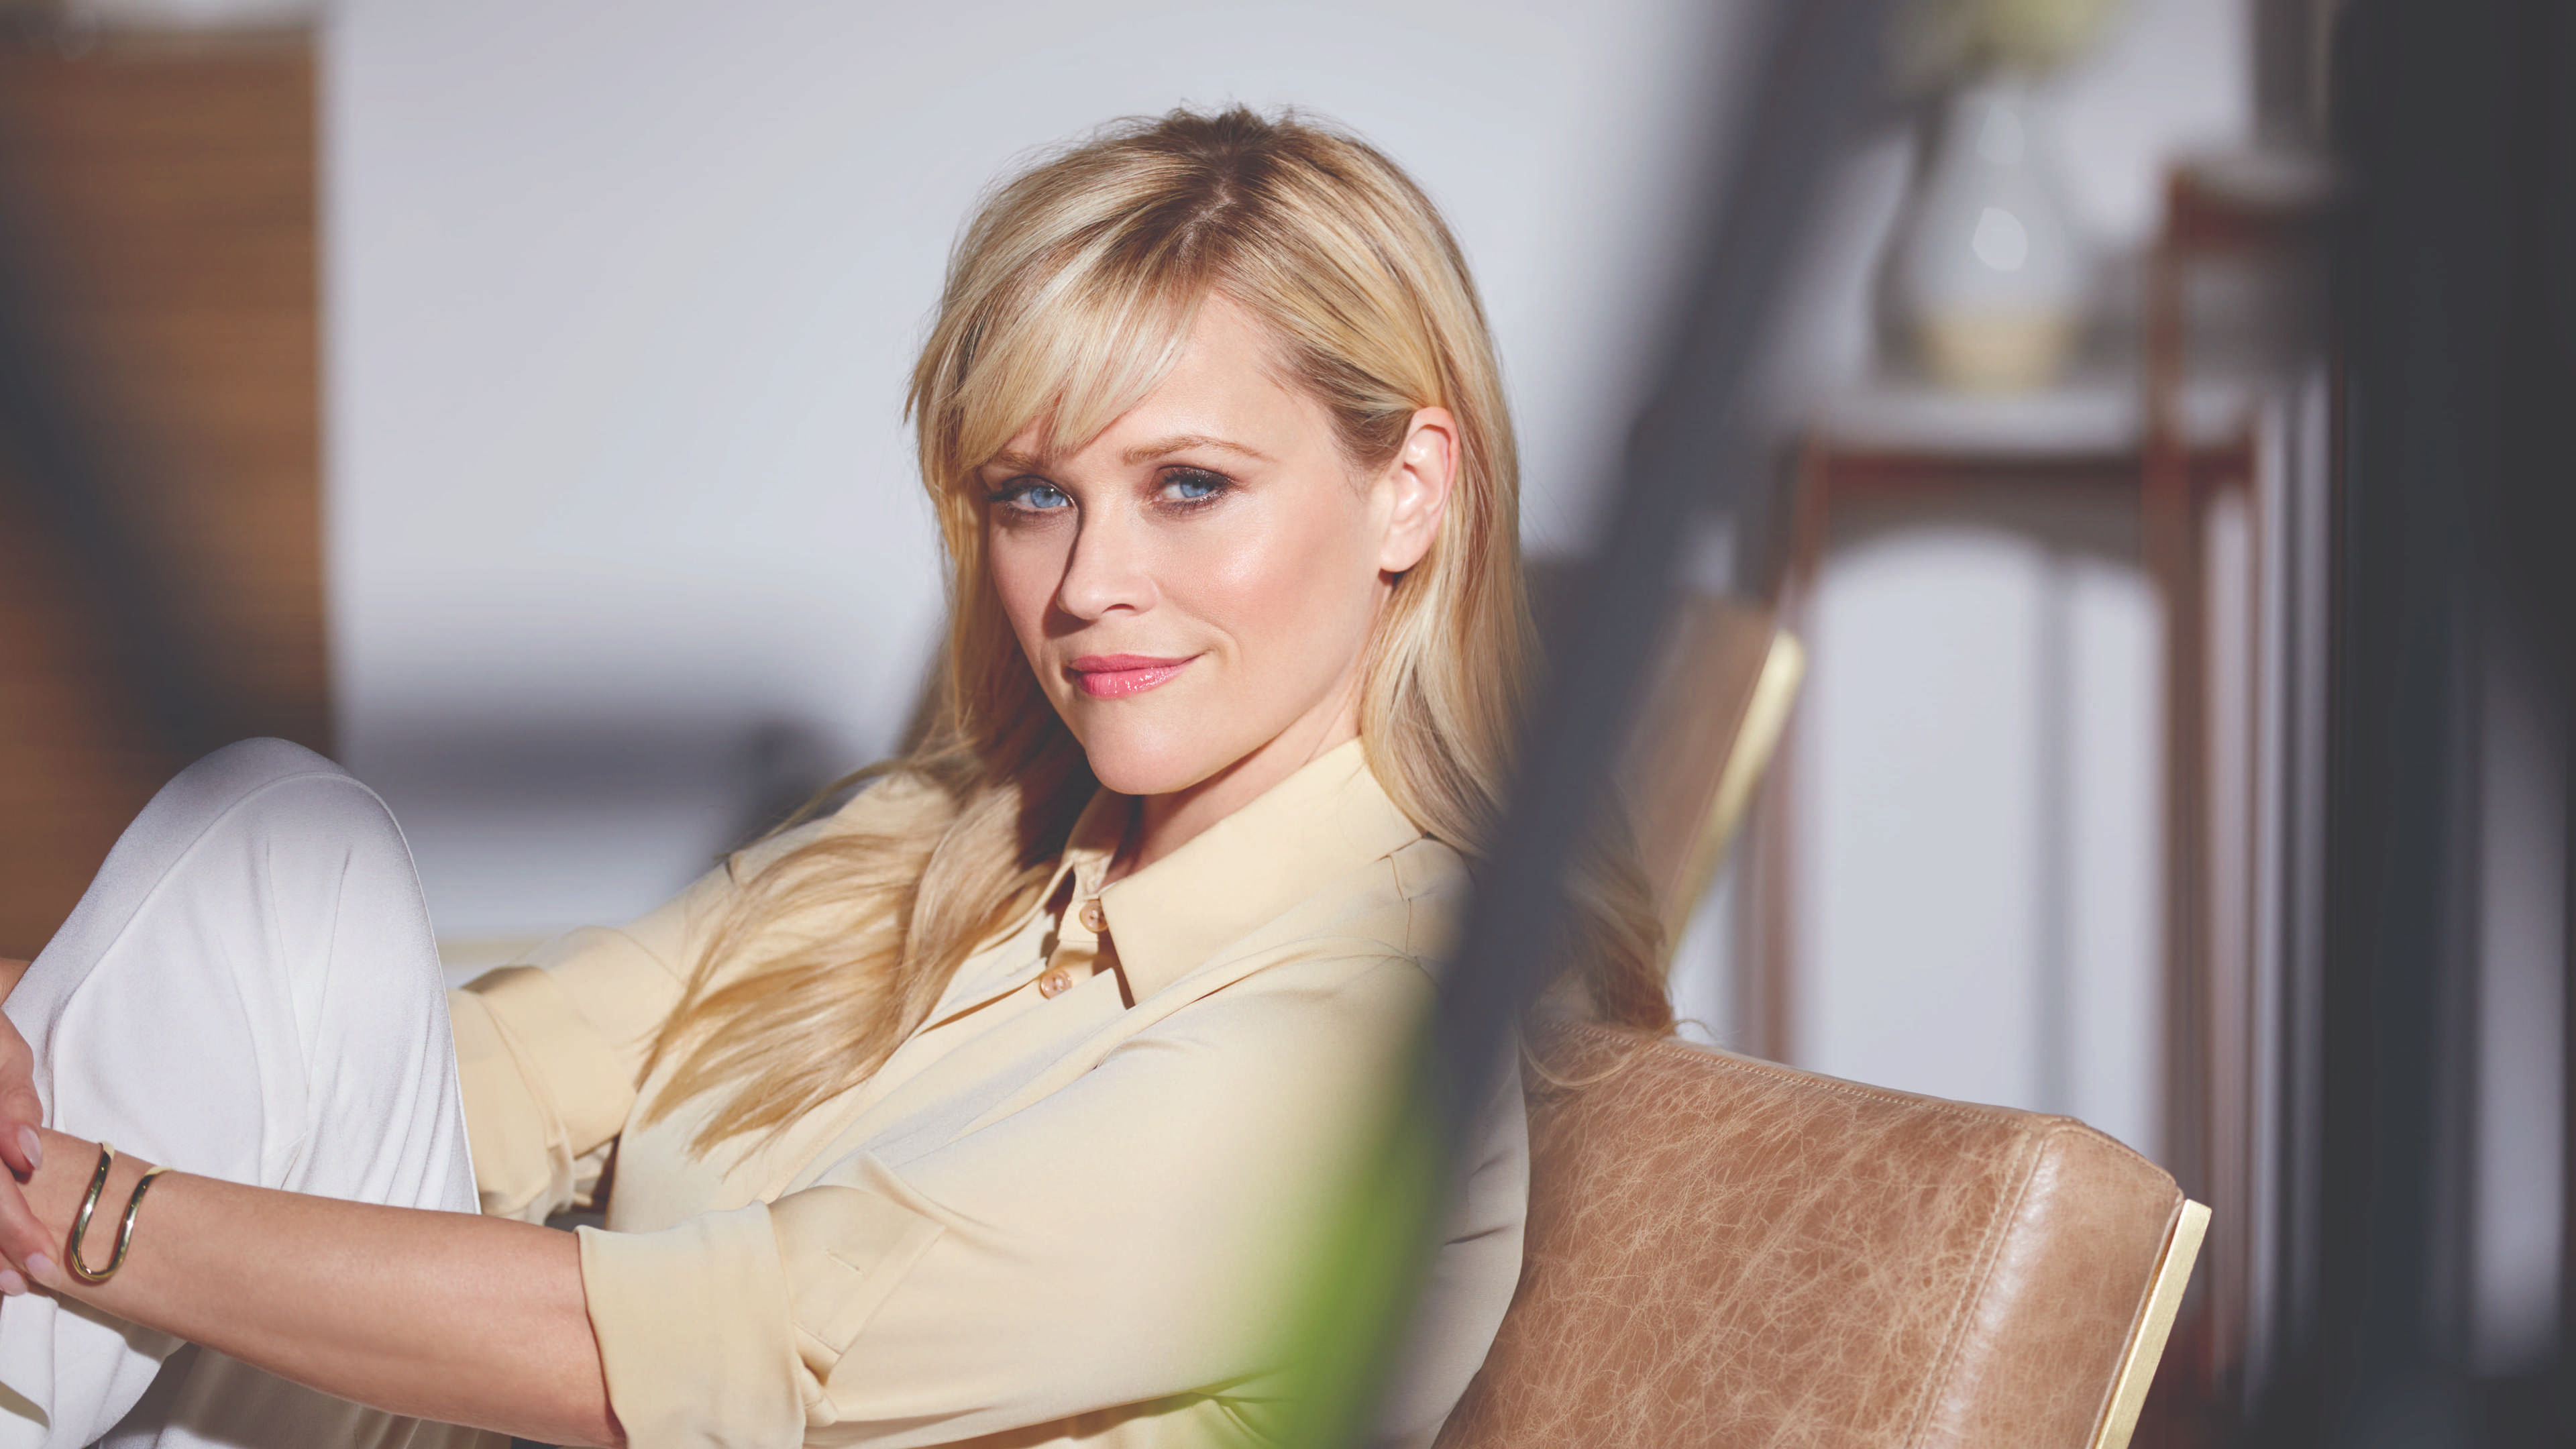 reese witherspoon 5k 1536948463 - Reese Witherspoon 5k - reese witherspoon wallpapers, hd-wallpapers, girls wallpapers, celebrities wallpapers, 5k wallpapers, 4k-wallpapers